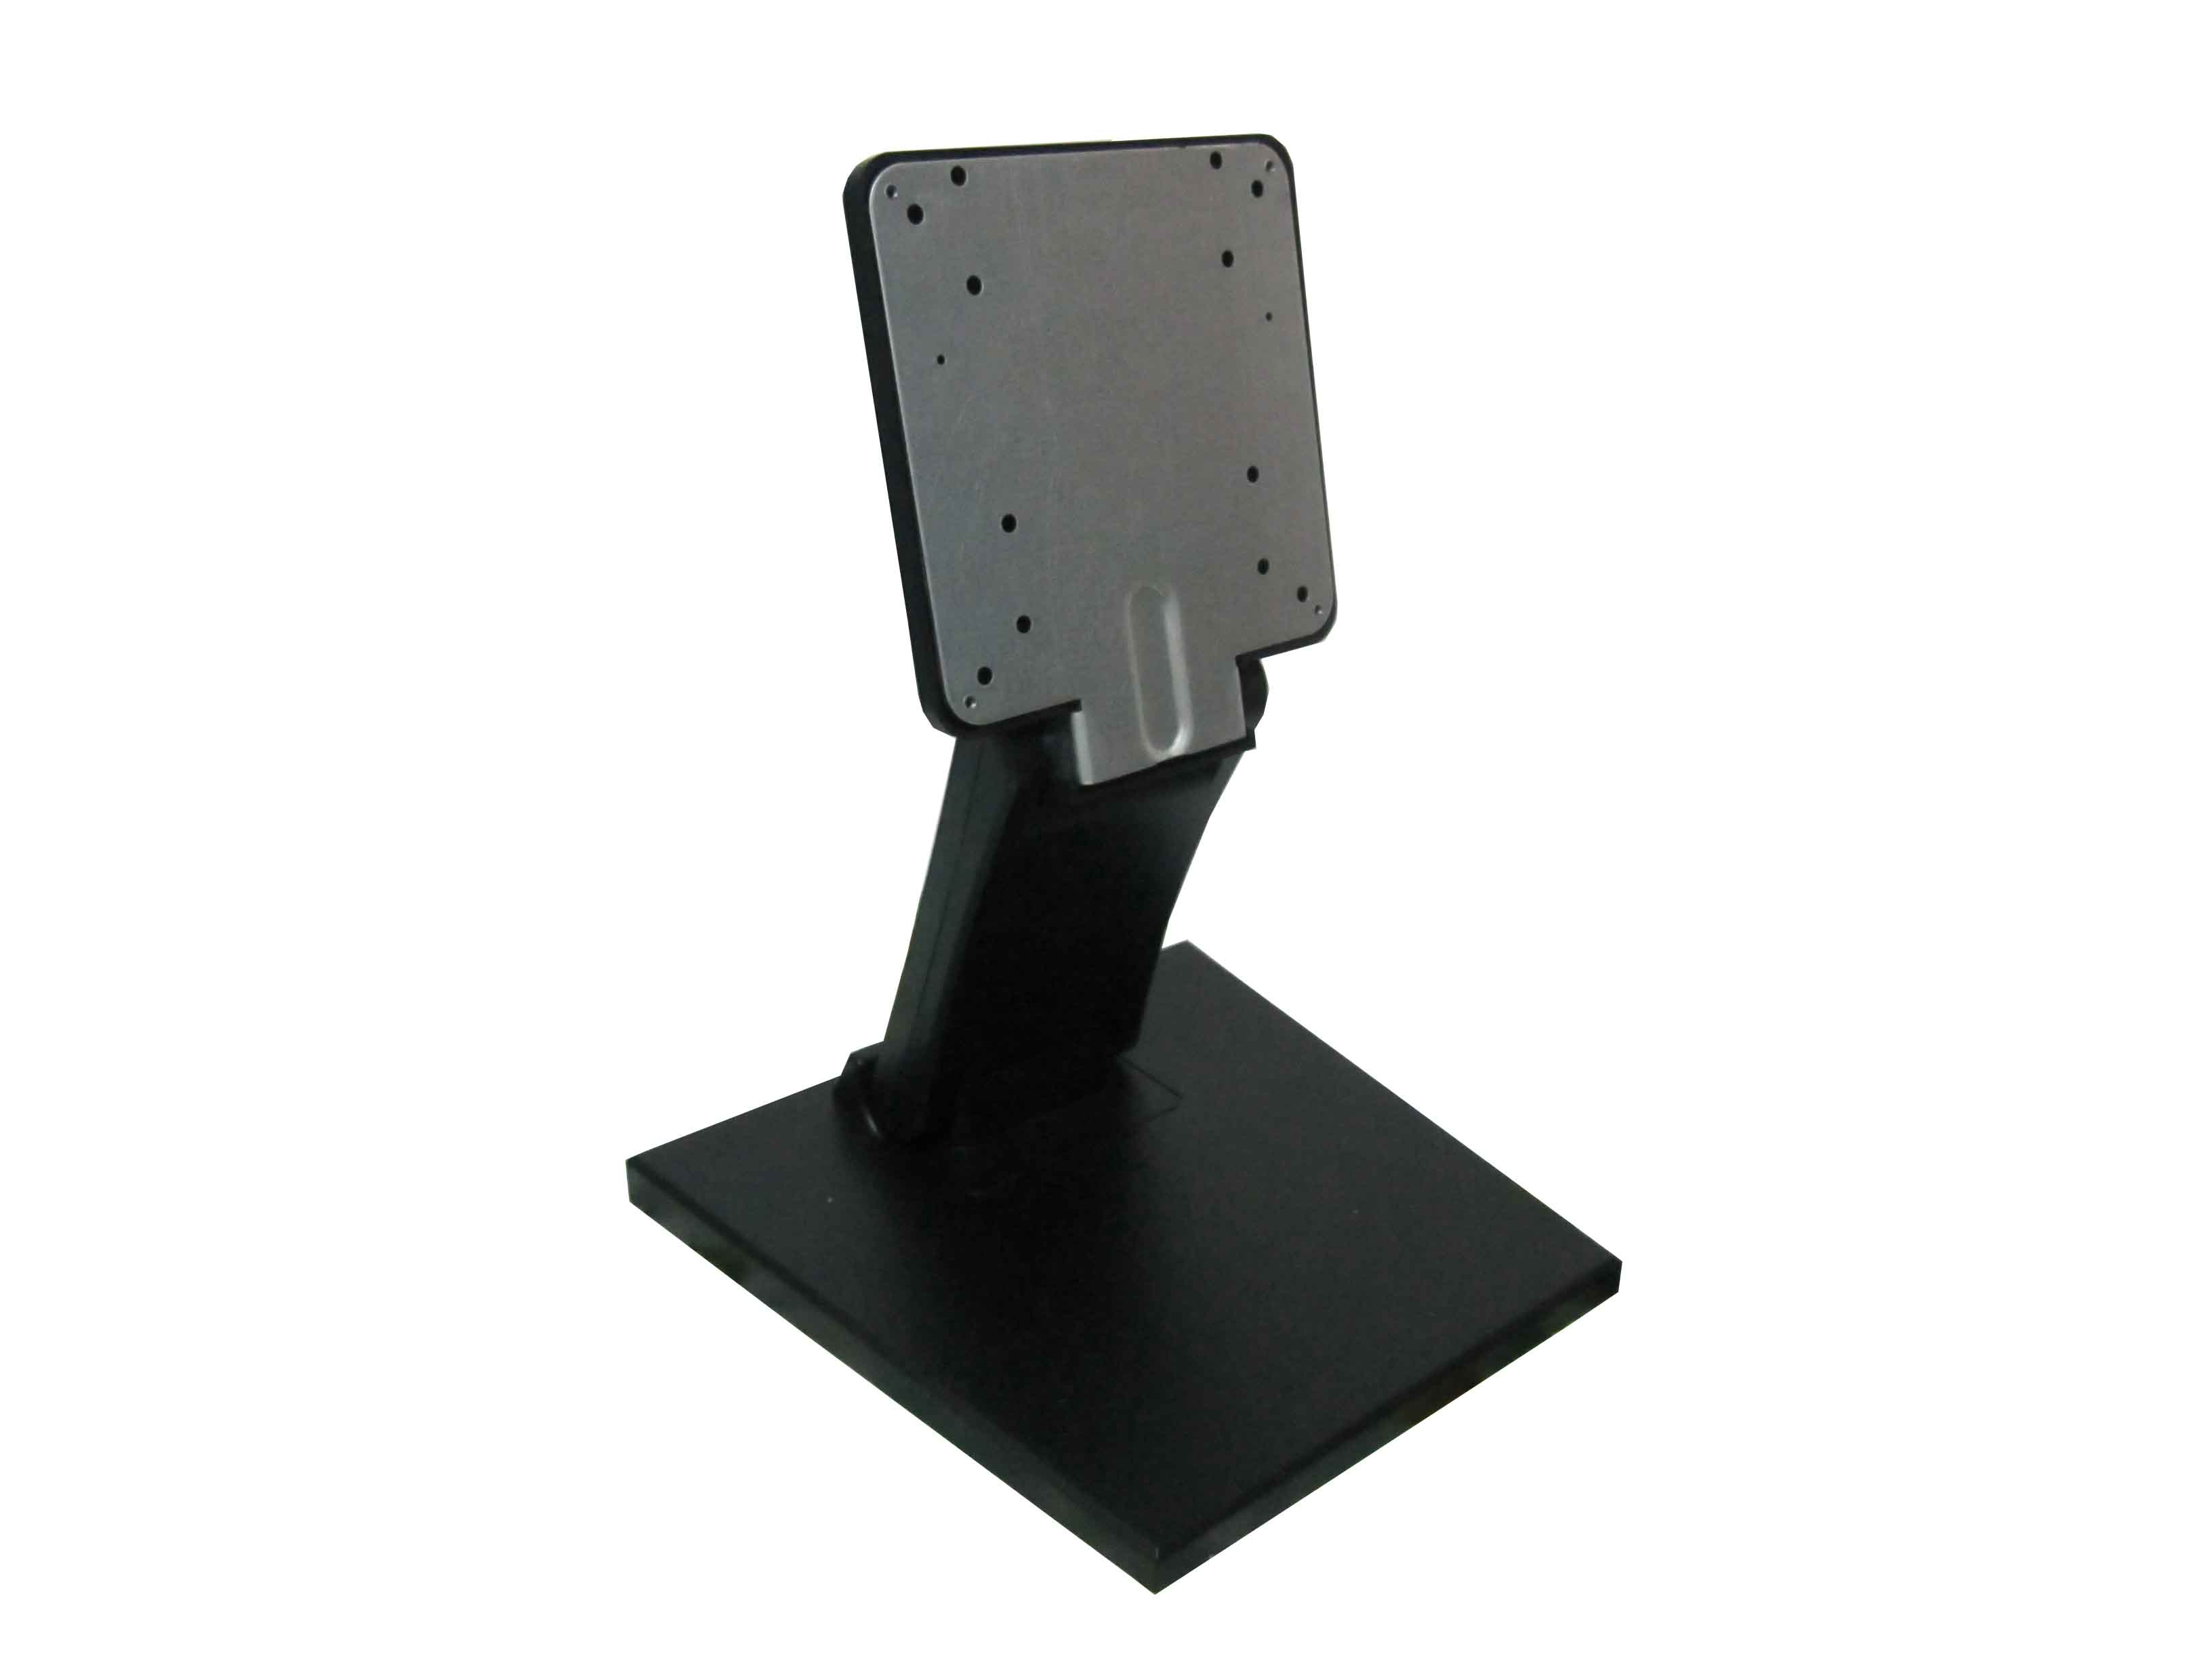 Universal Flat Screen Tv Stands In Popular Flat Screen Tvth Stand Fitueyes Universal Tabletop Base Mount For (View 13 of 20)